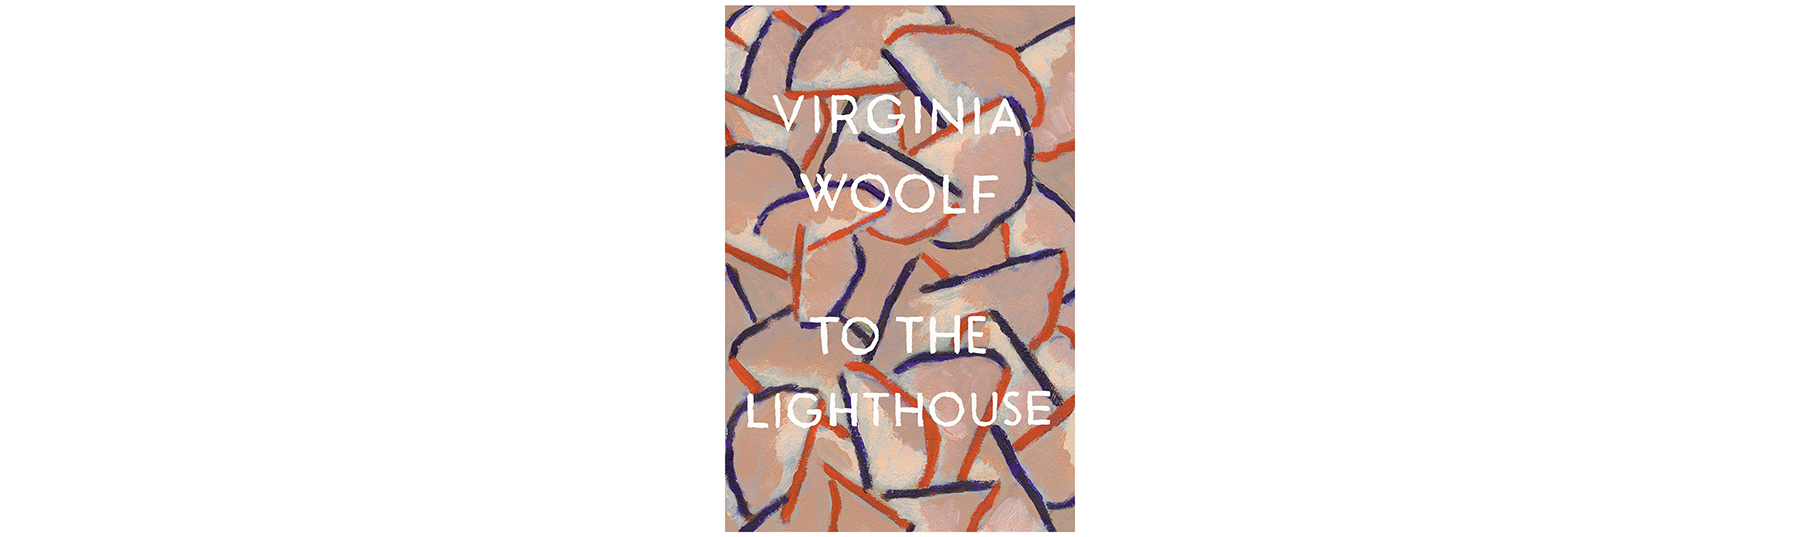 Cover of To the Lighthouse, by Virginia Woolf